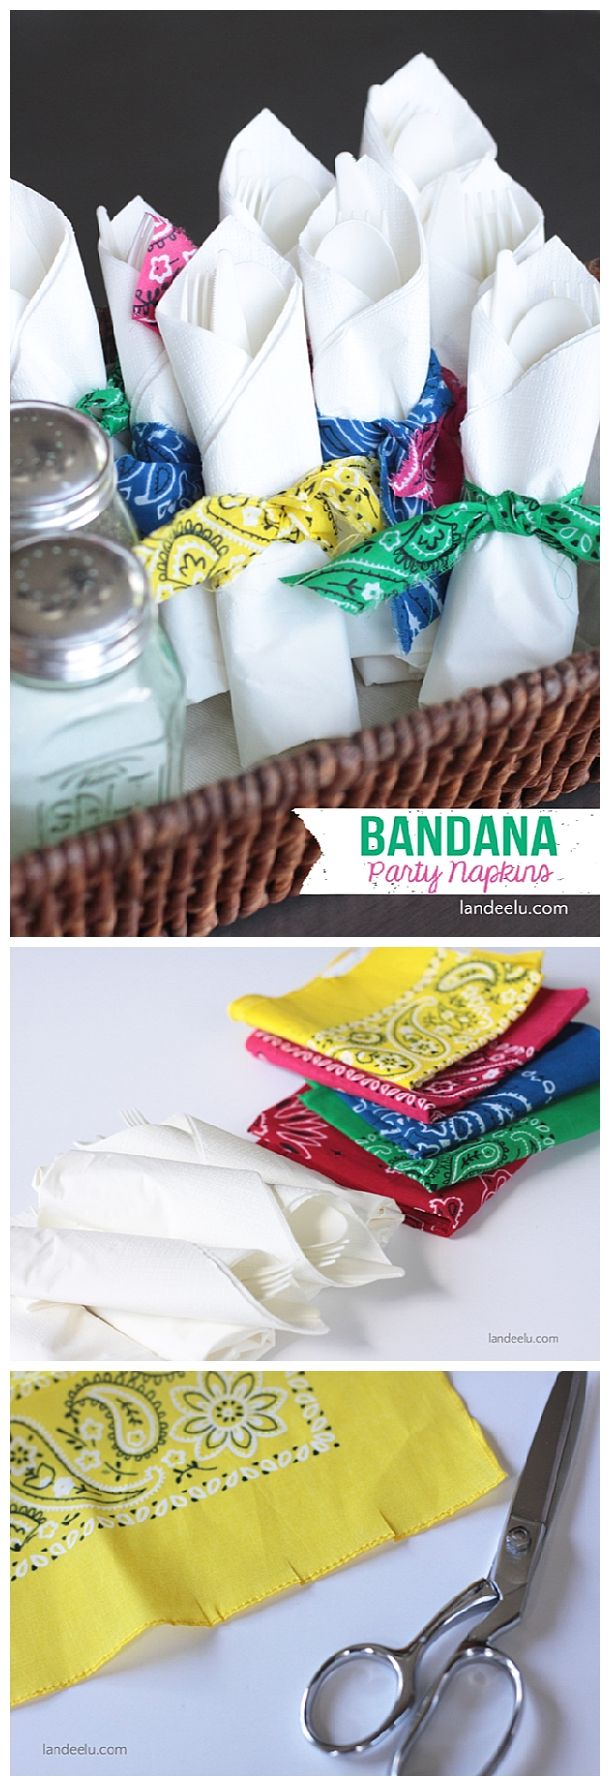 Easy DIY Bandana Napkin Rings Craft Tutorial - Perfect for a Summer Party, Potluck or Barbecue!